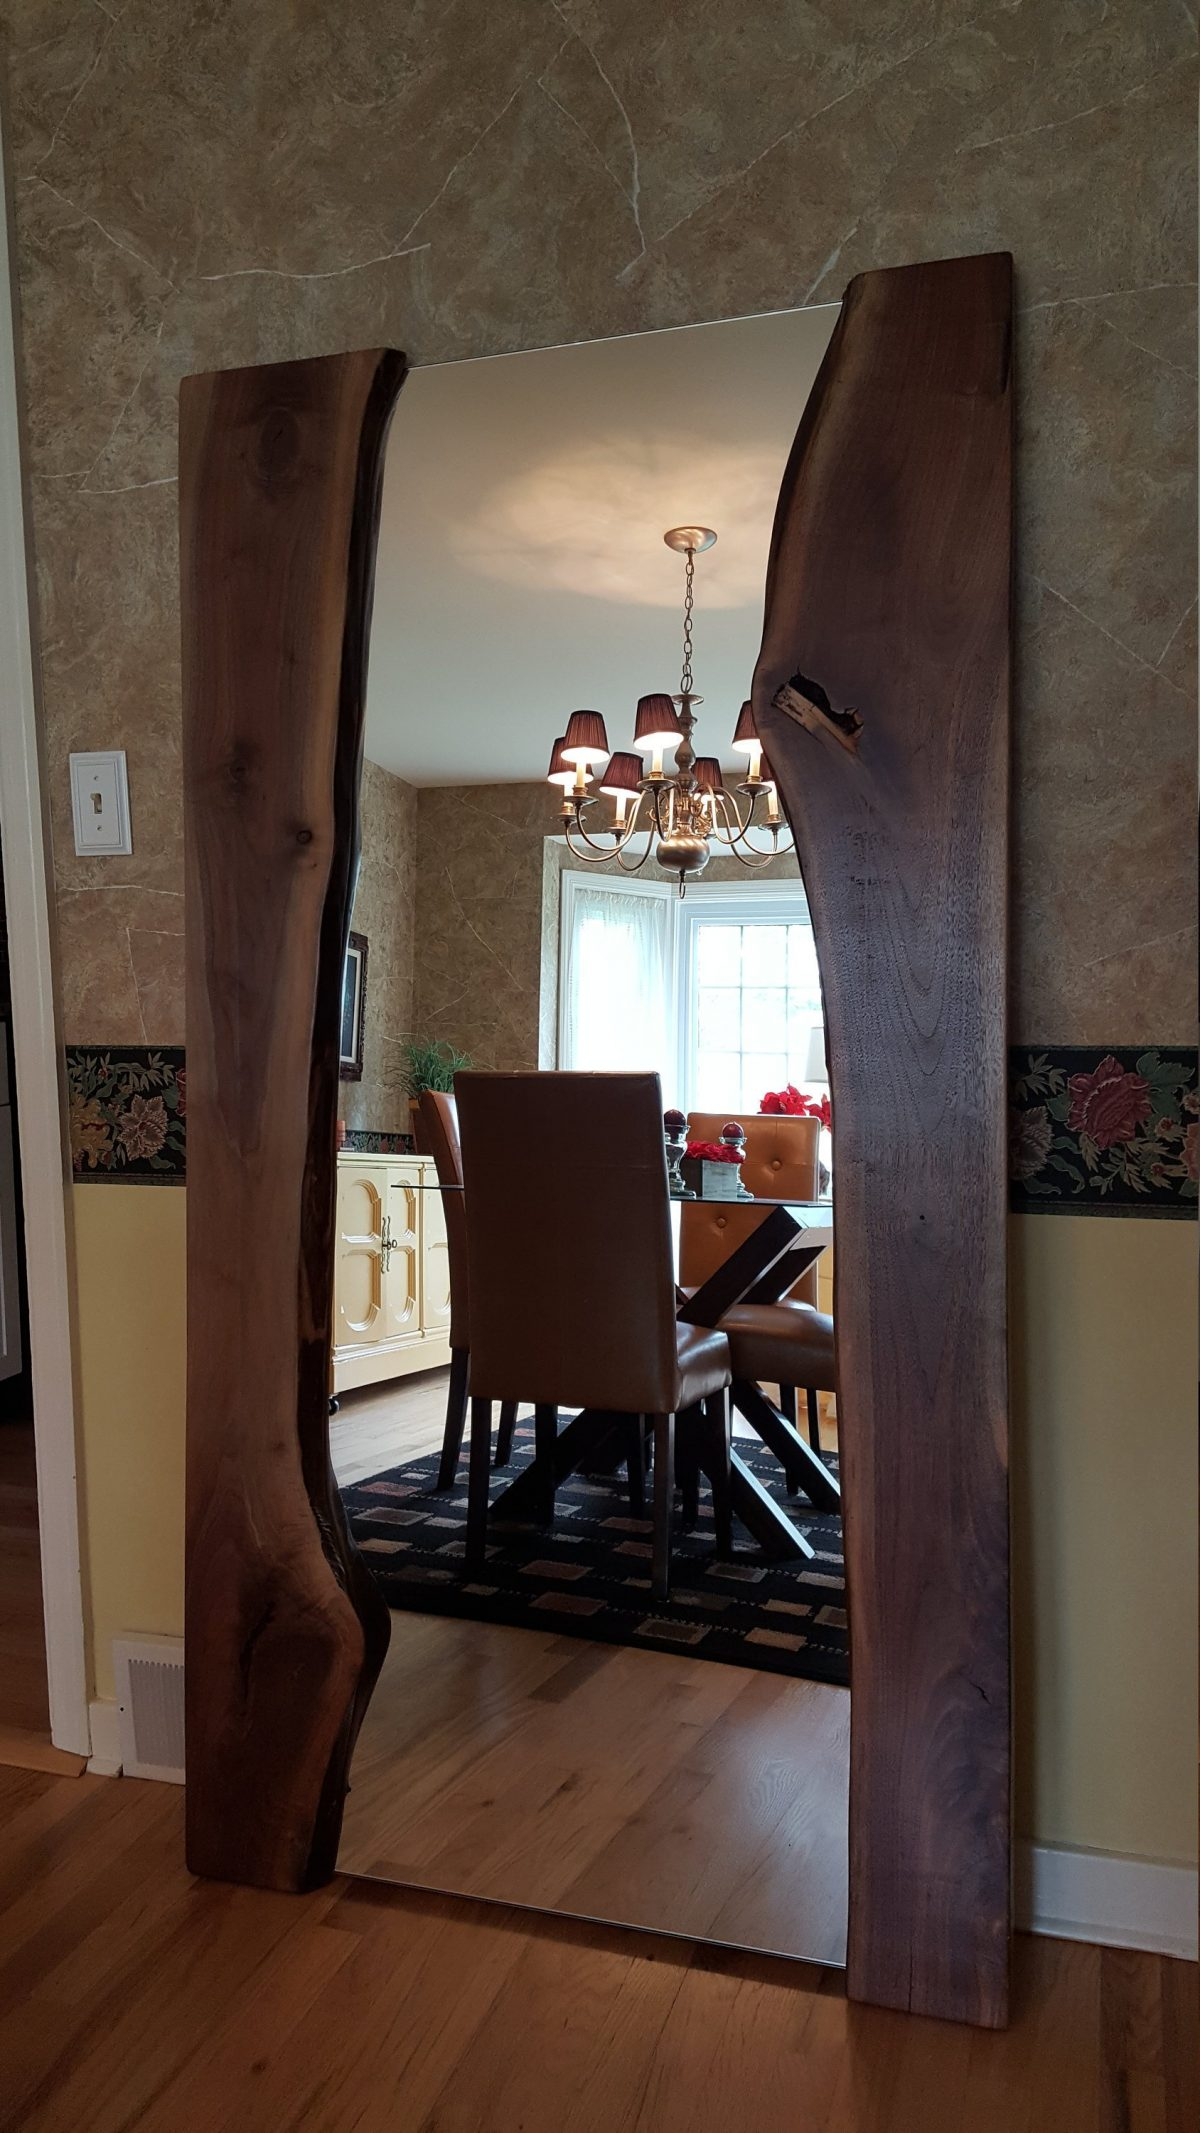 CUSTOM Live Edge Black Walnut Mirror